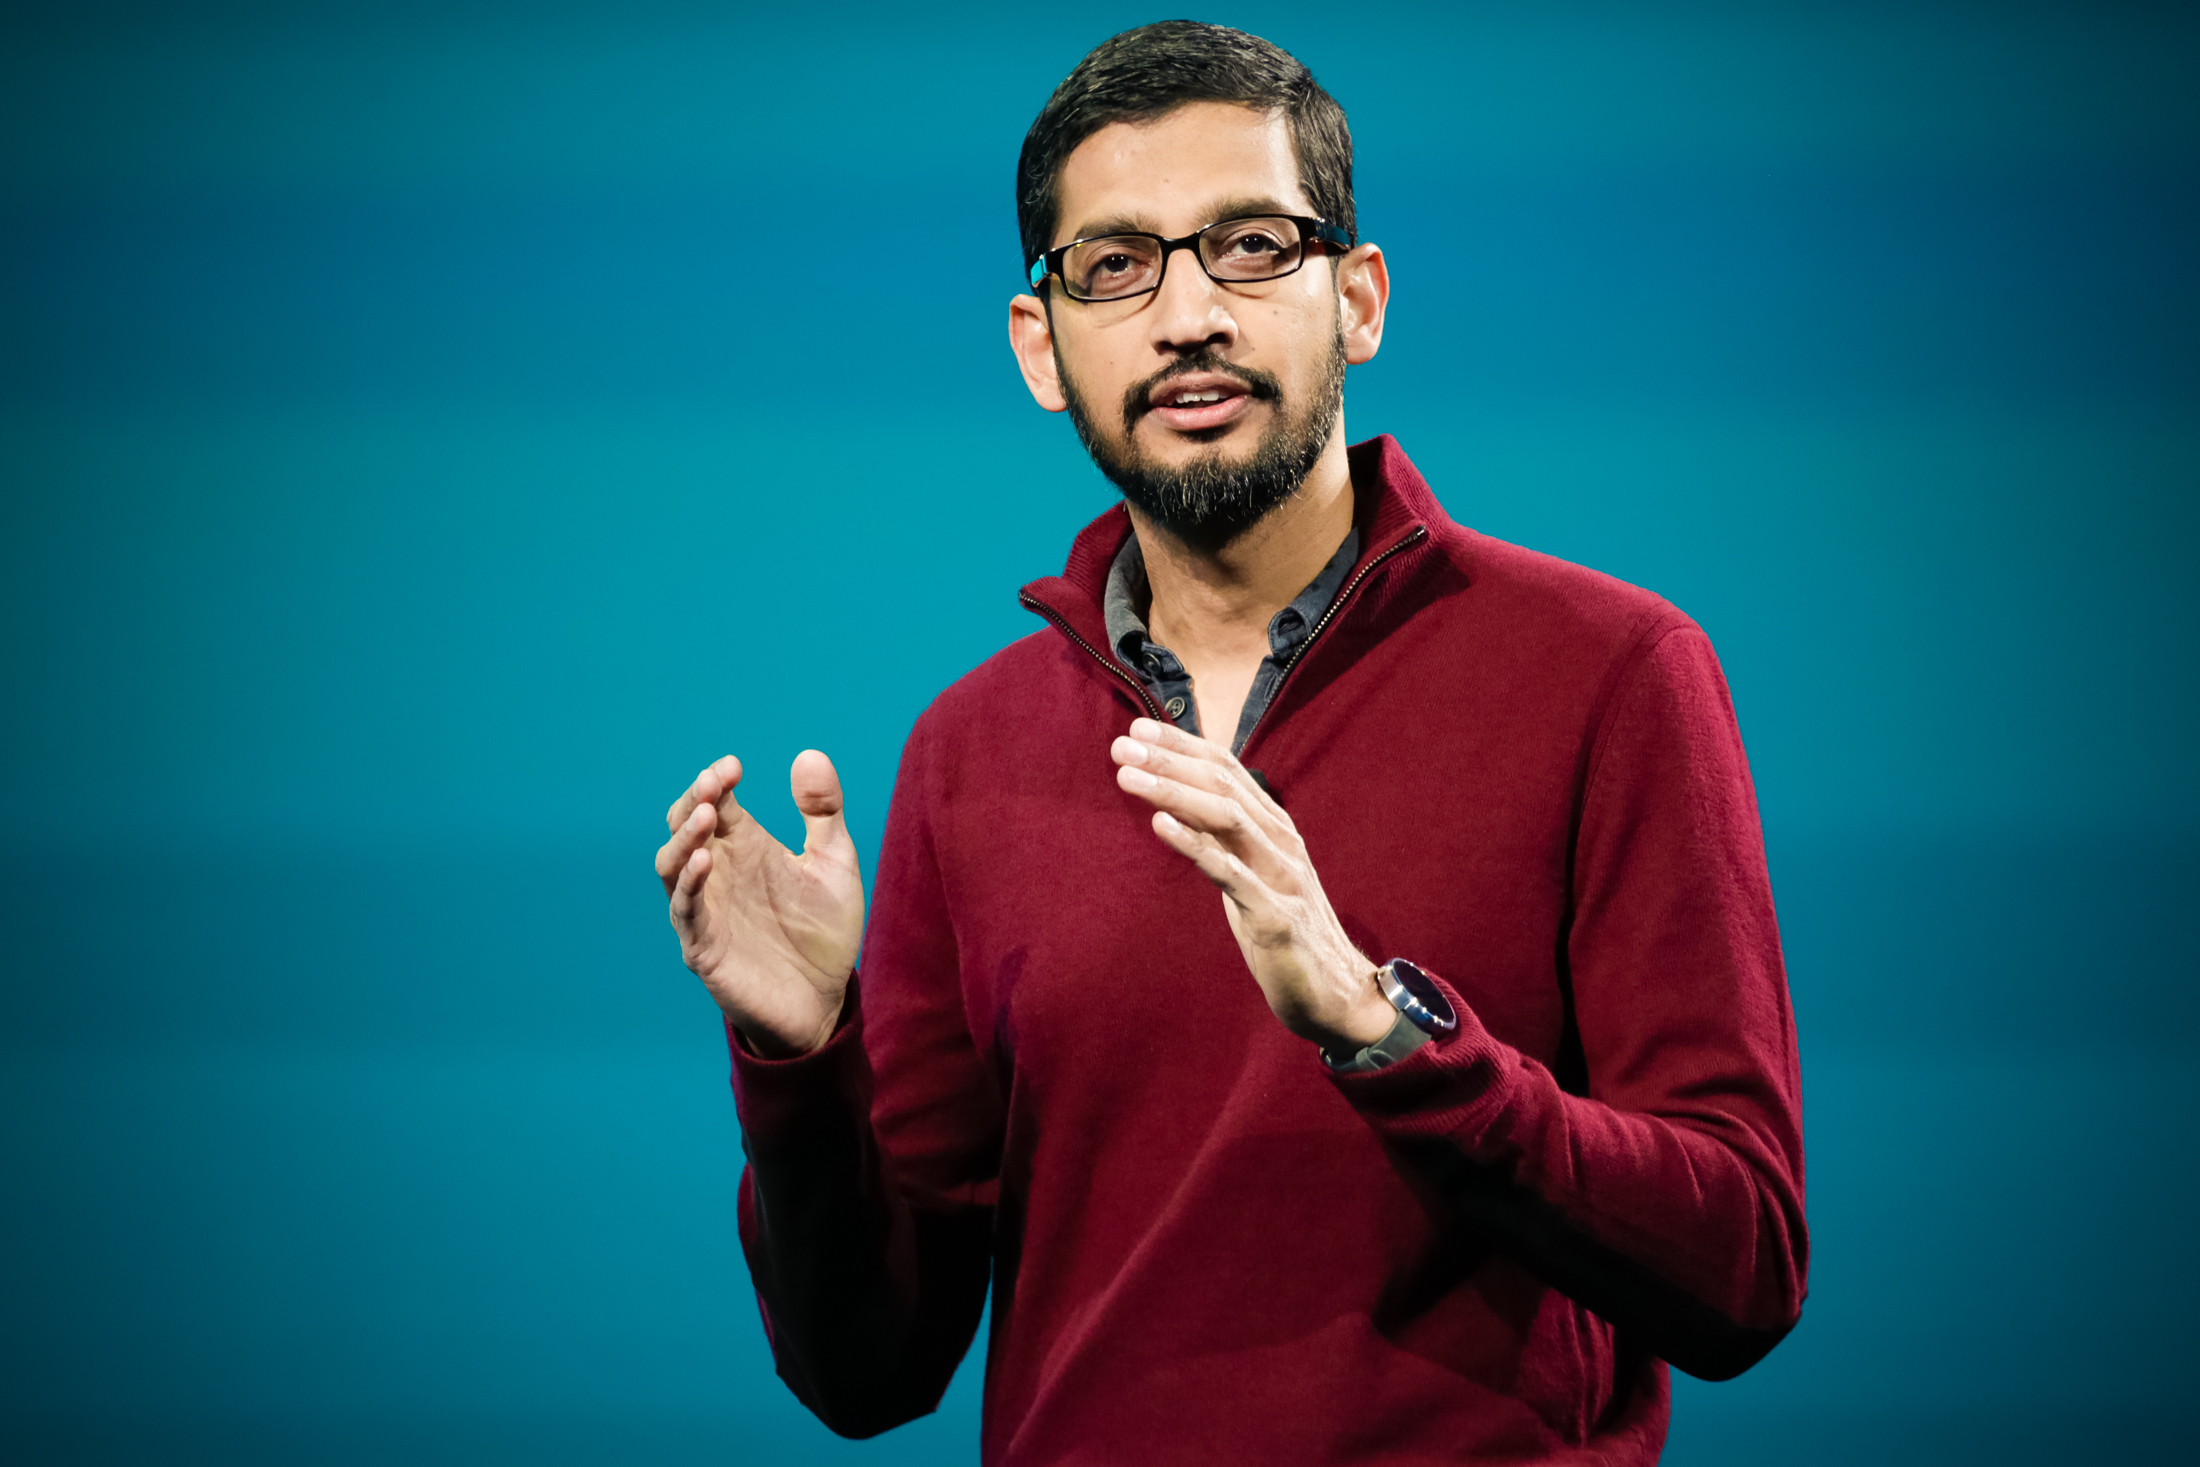 Google's head of Android to oversee its most important products